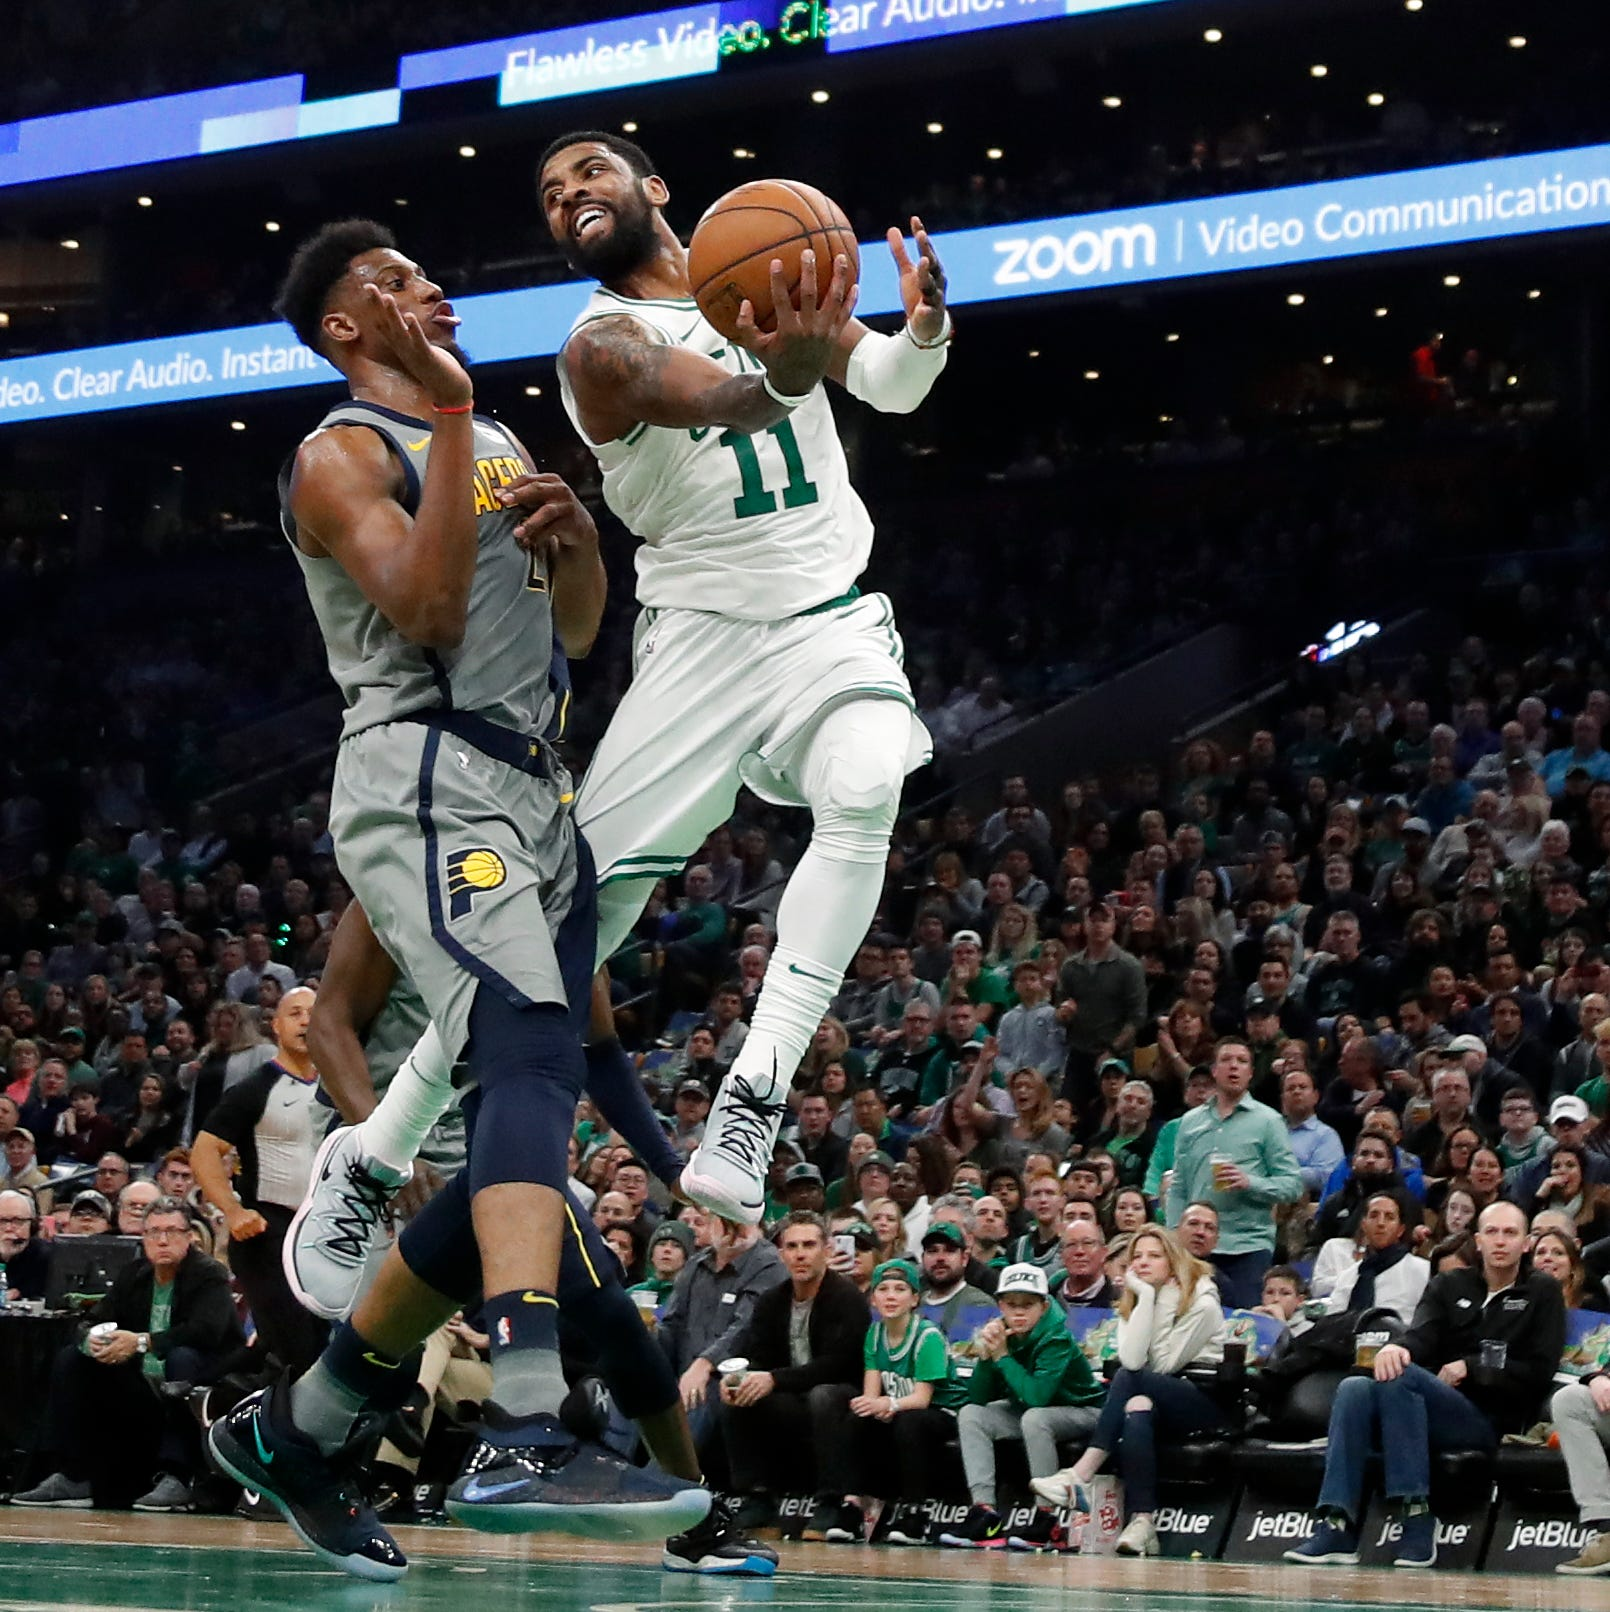 Pacers 'still in the fight' after Celtics take 4th spot on Kyrie Irving's winning layup